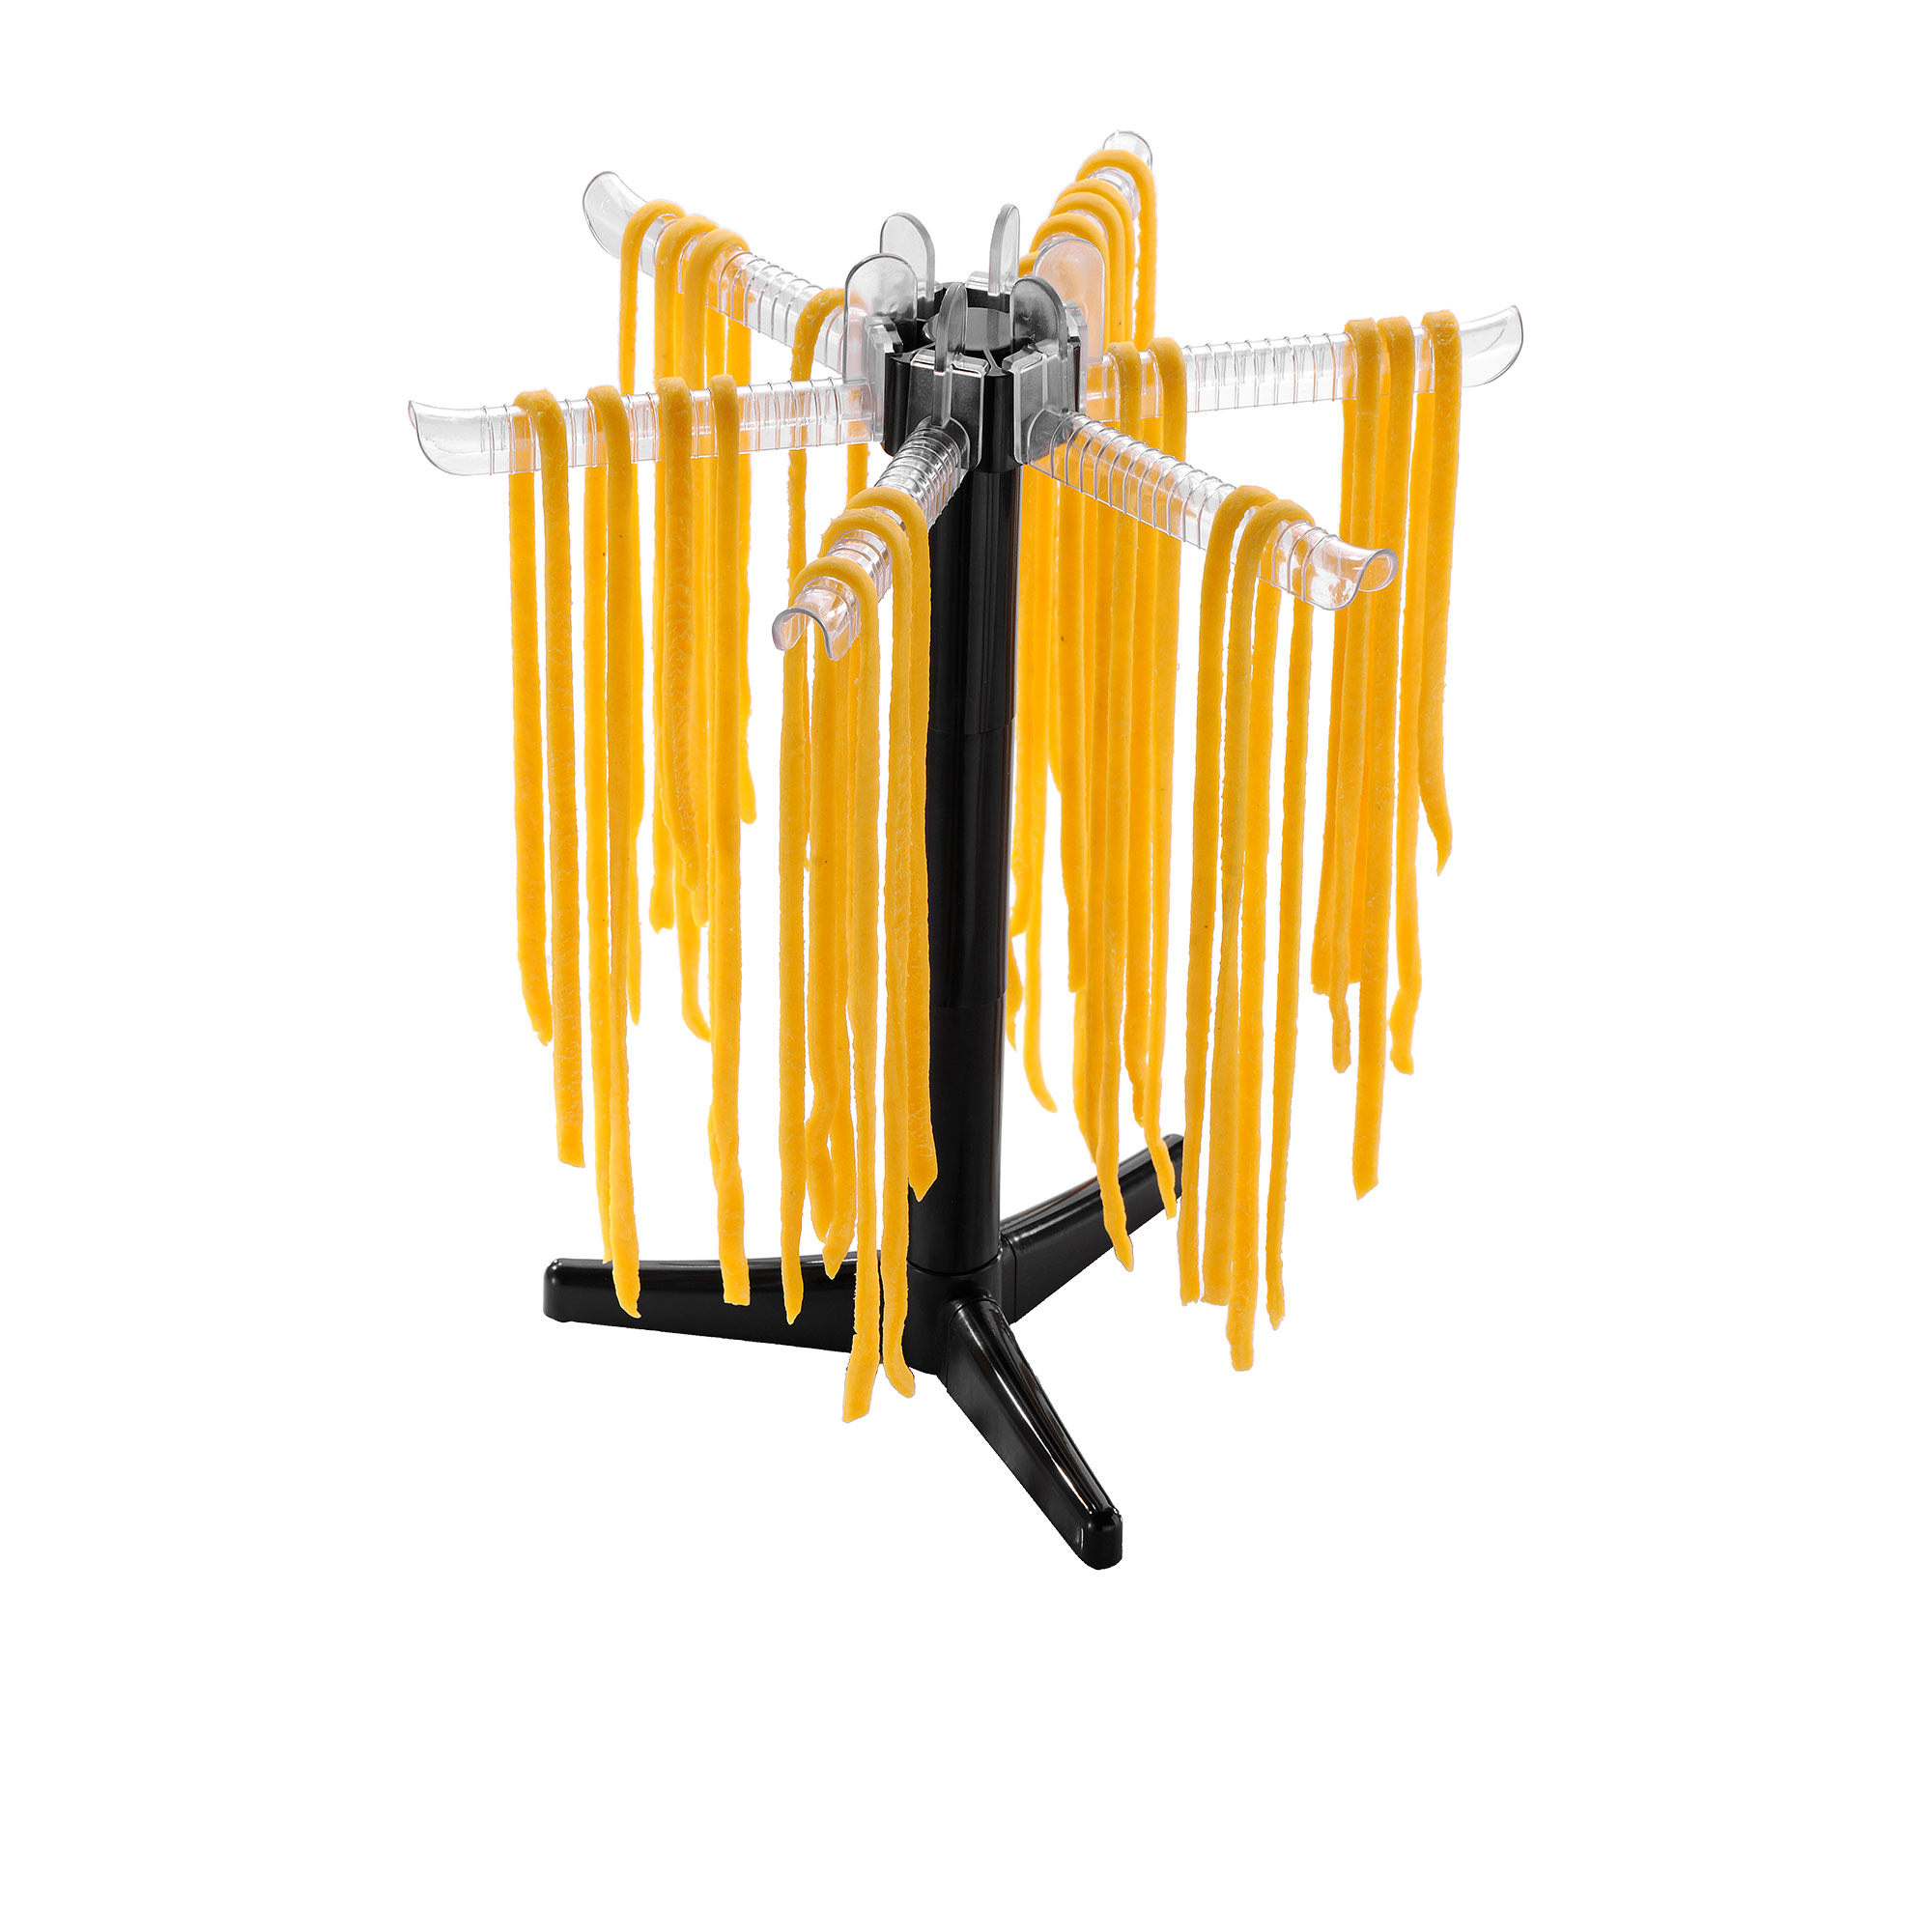 Gefu Diverso Pasta Drying Rack Black